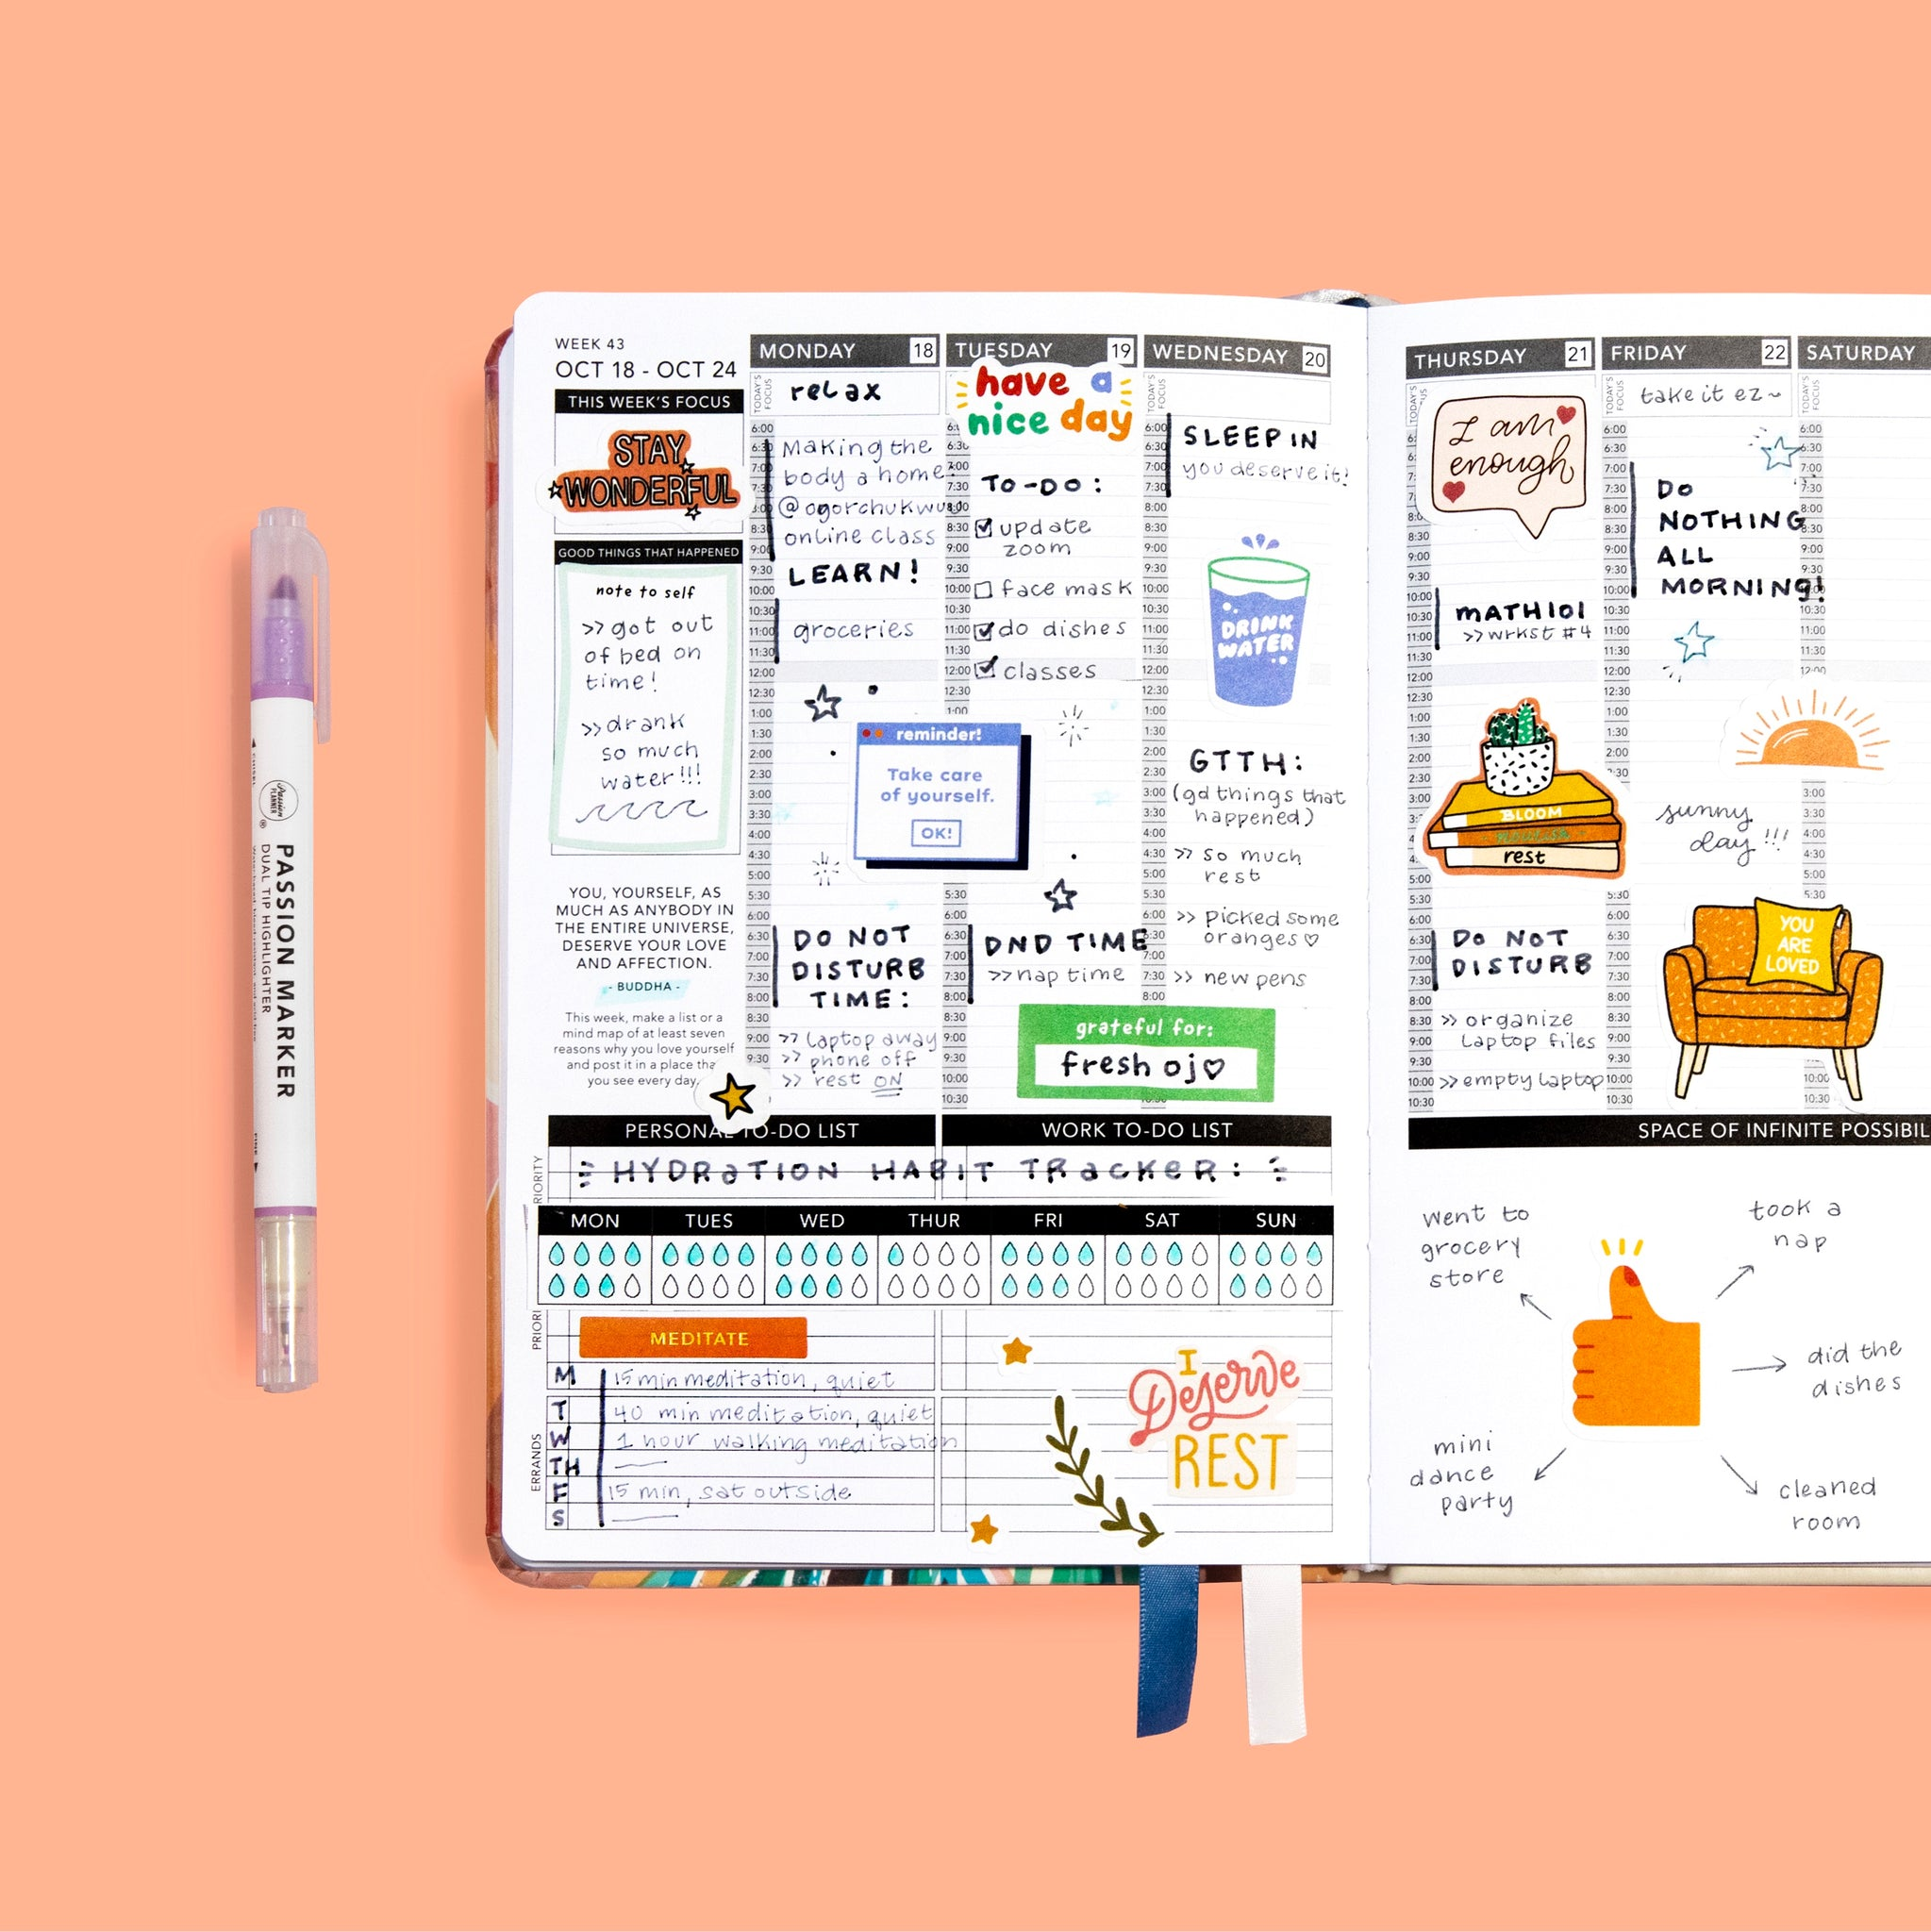 Passion Planner Weekly Layout Filled Out with Self-Care Activities and Water Tracker